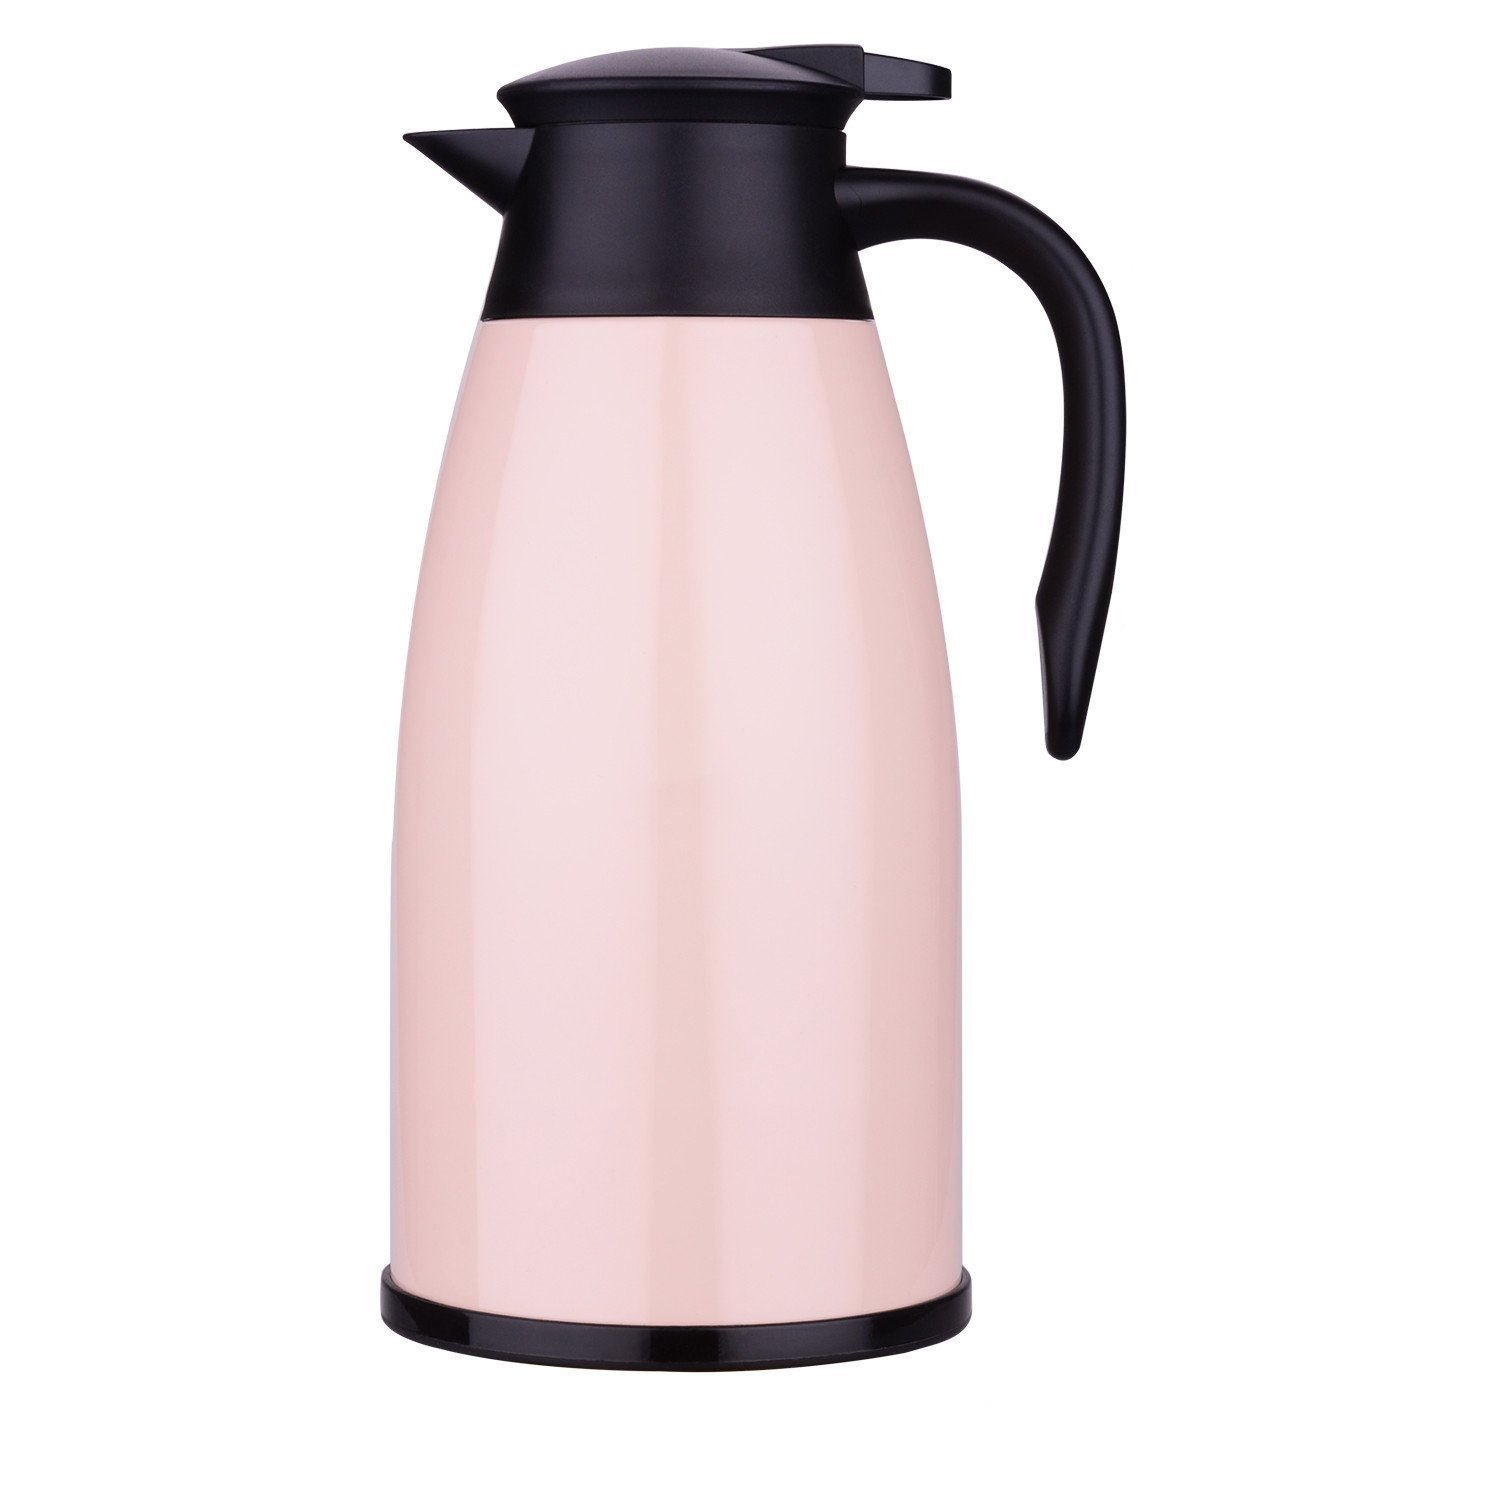 2 Litre Thermal Carafe For Stainless Steal / Thermal Coffee Carafe / 24 Hour Heat Thermos 4335459702